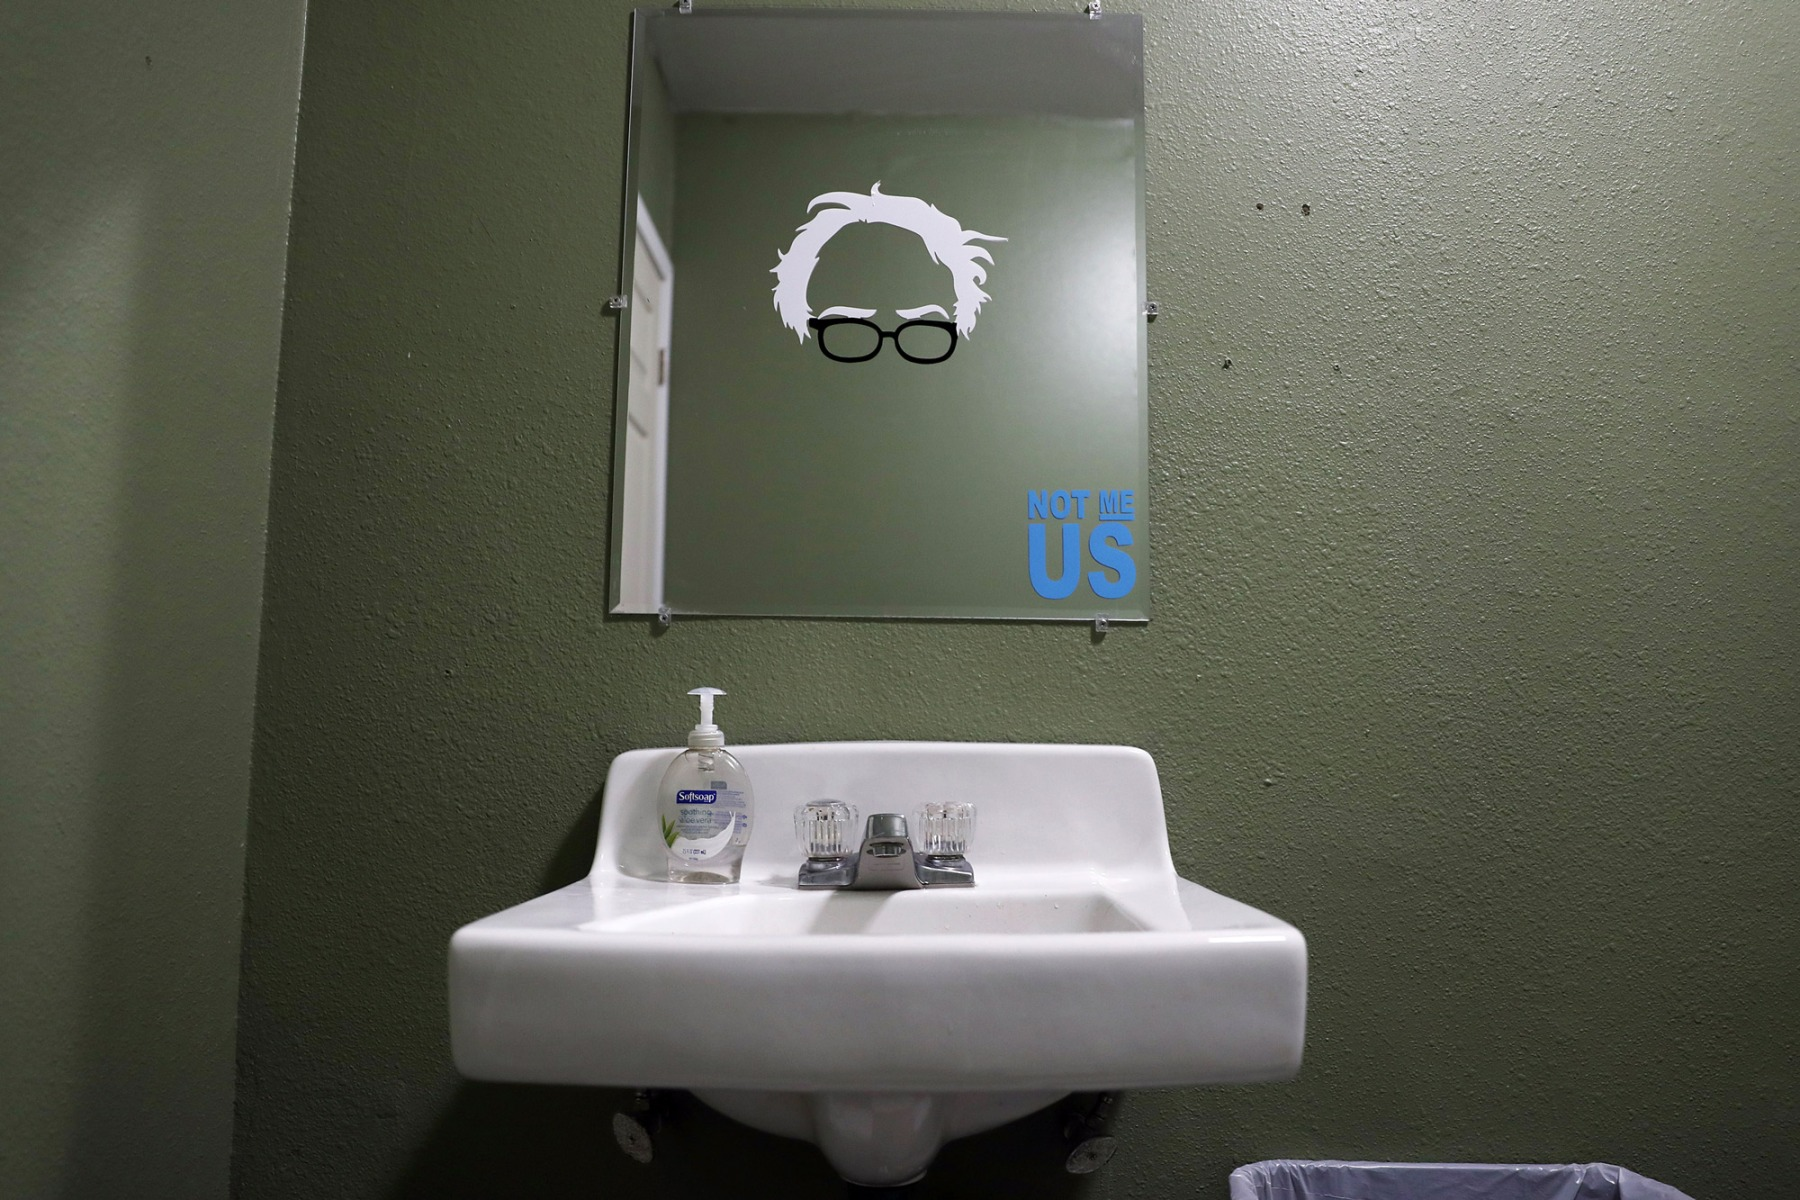 CEDAR RAPIDS, IOWA  - FEBRUARY 02:  A cutout of the eyeglasses and hair of Democratic presidential candidate Sen. Bernie Sanders (I-VT)  is stuck on a mirror at a campaign field office on February 02, 2020 in Cedar Rapids, Iowa. Iowa's first-in-the-nation caucuses will be held on February 3. (Photo by Joe Raedle/Getty Images)